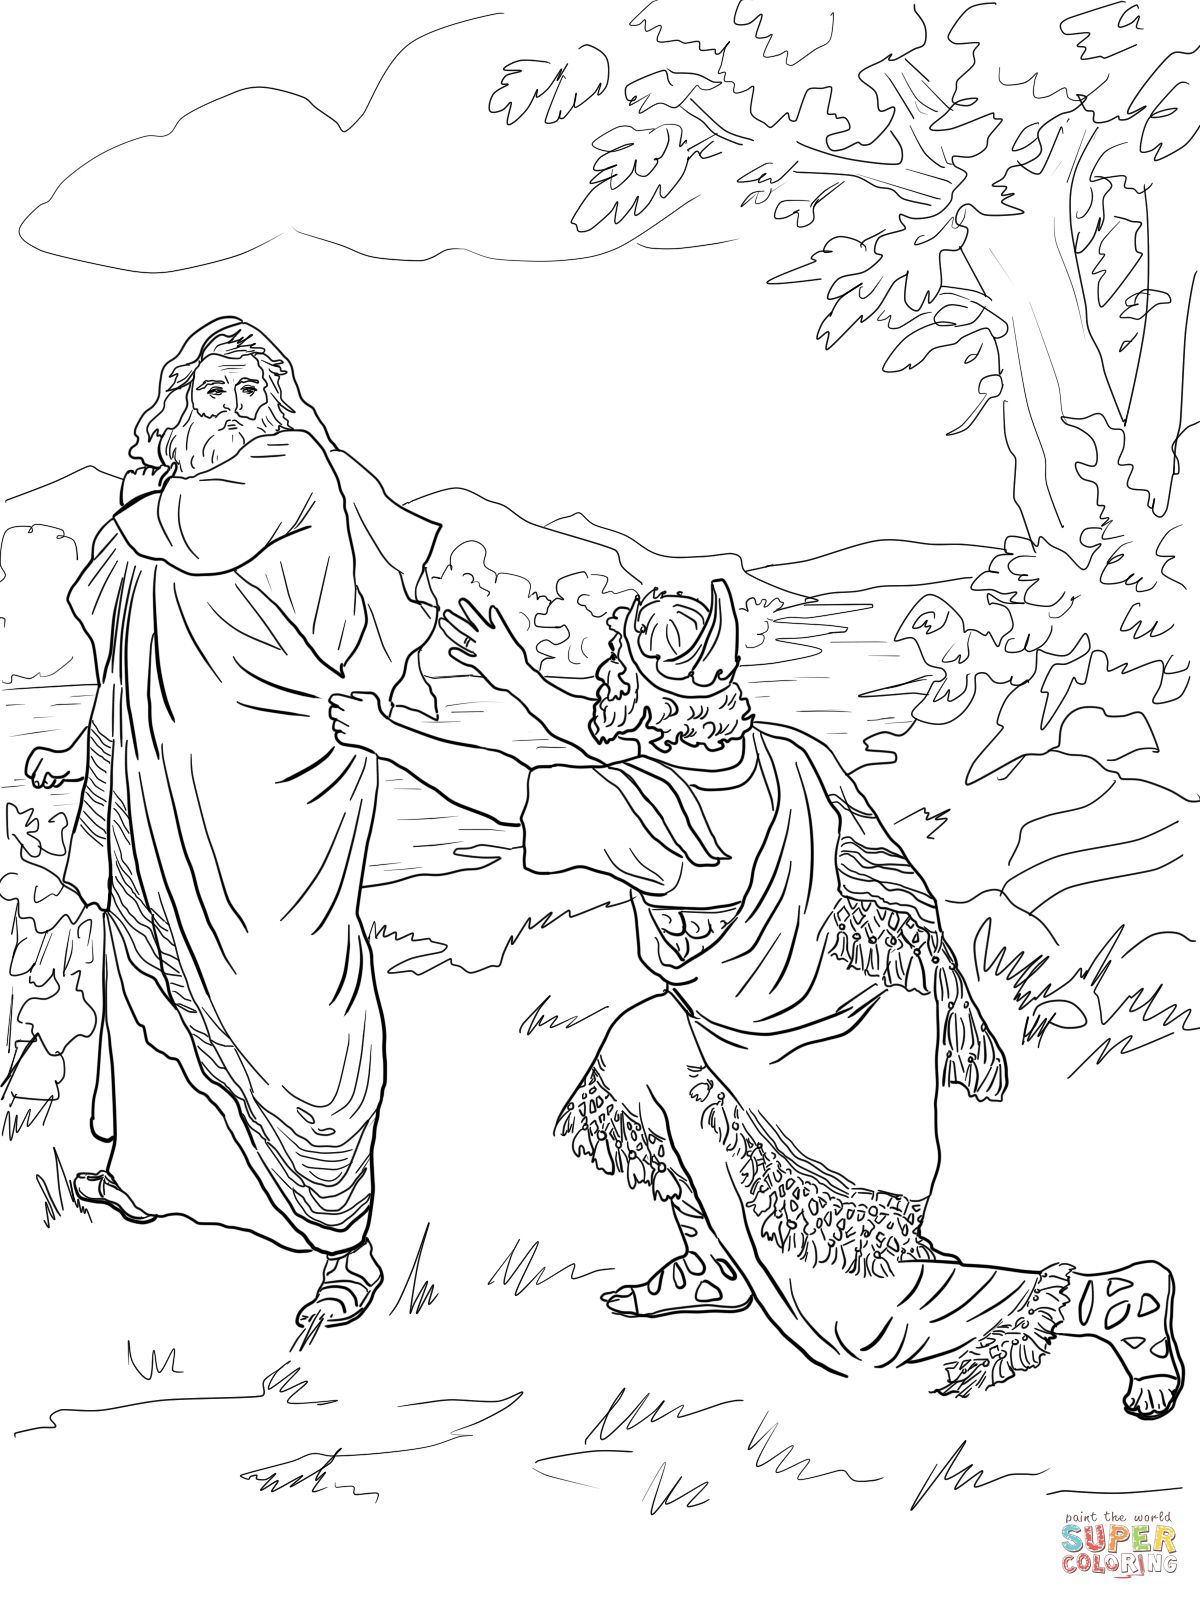 Elijah Coloring Pages  Printable 19j - Save it to your computer